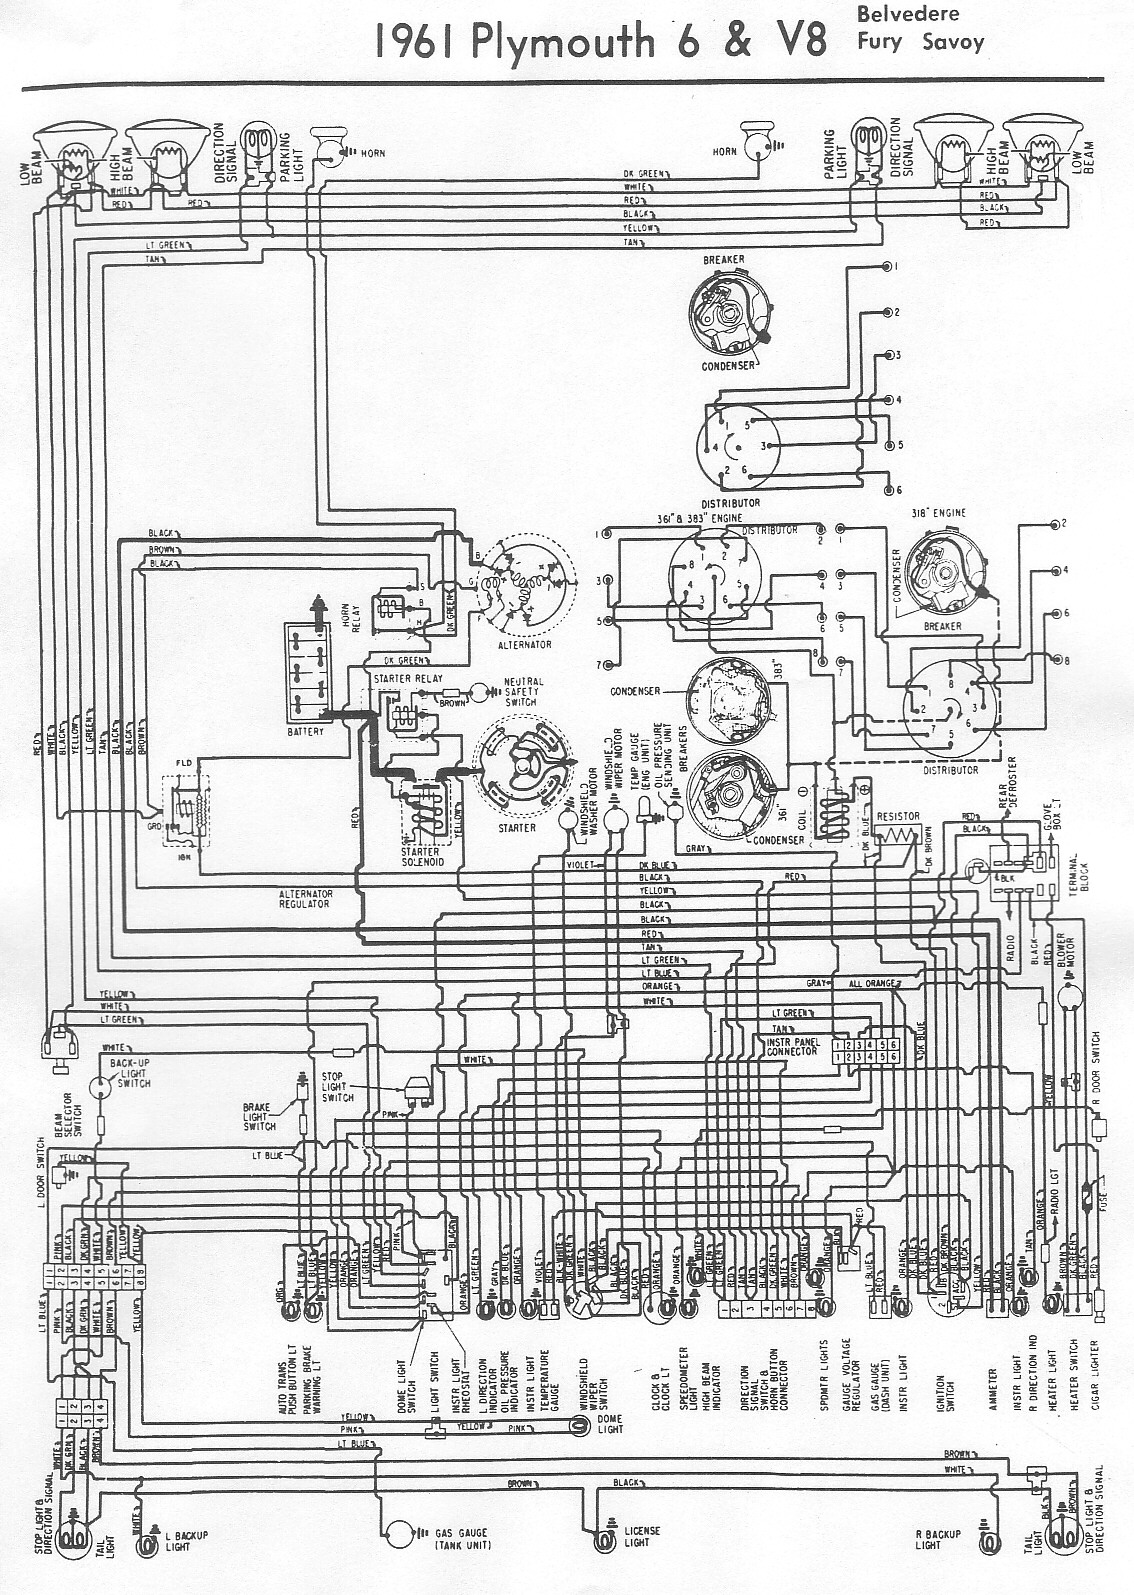 small resolution of 1969 plymouth fury wiring diagram electrical work wiring diagram u2022 1939 plymouth positive ground wiring